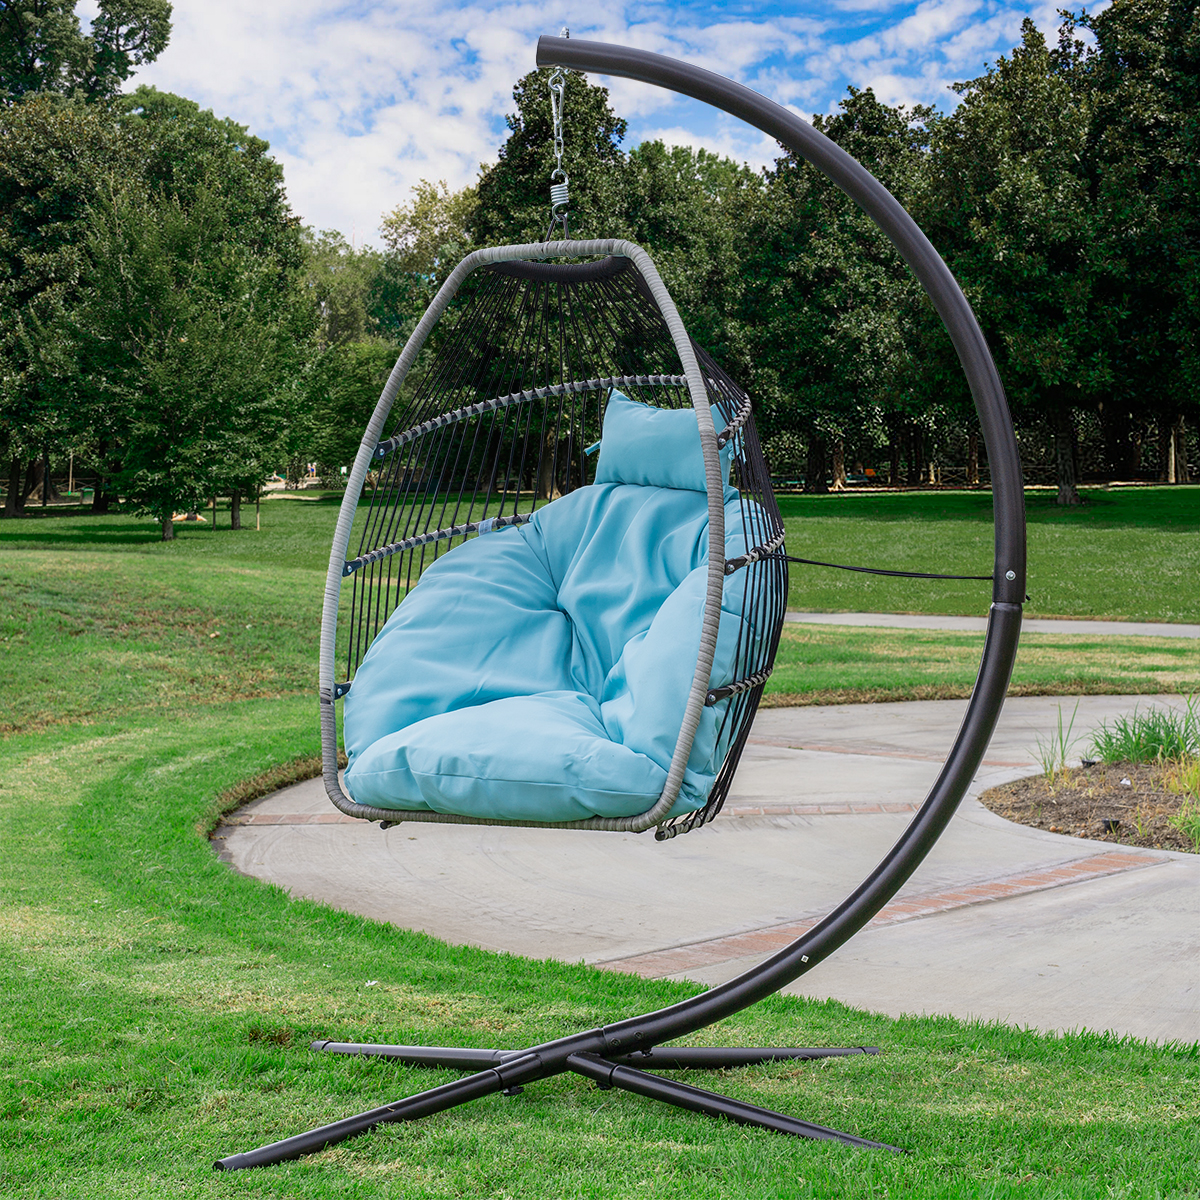 Fabulous Details About Premium Outdoor Hanging Chair Swing Chair Patio Egg Chair Large Cushion Large Caraccident5 Cool Chair Designs And Ideas Caraccident5Info